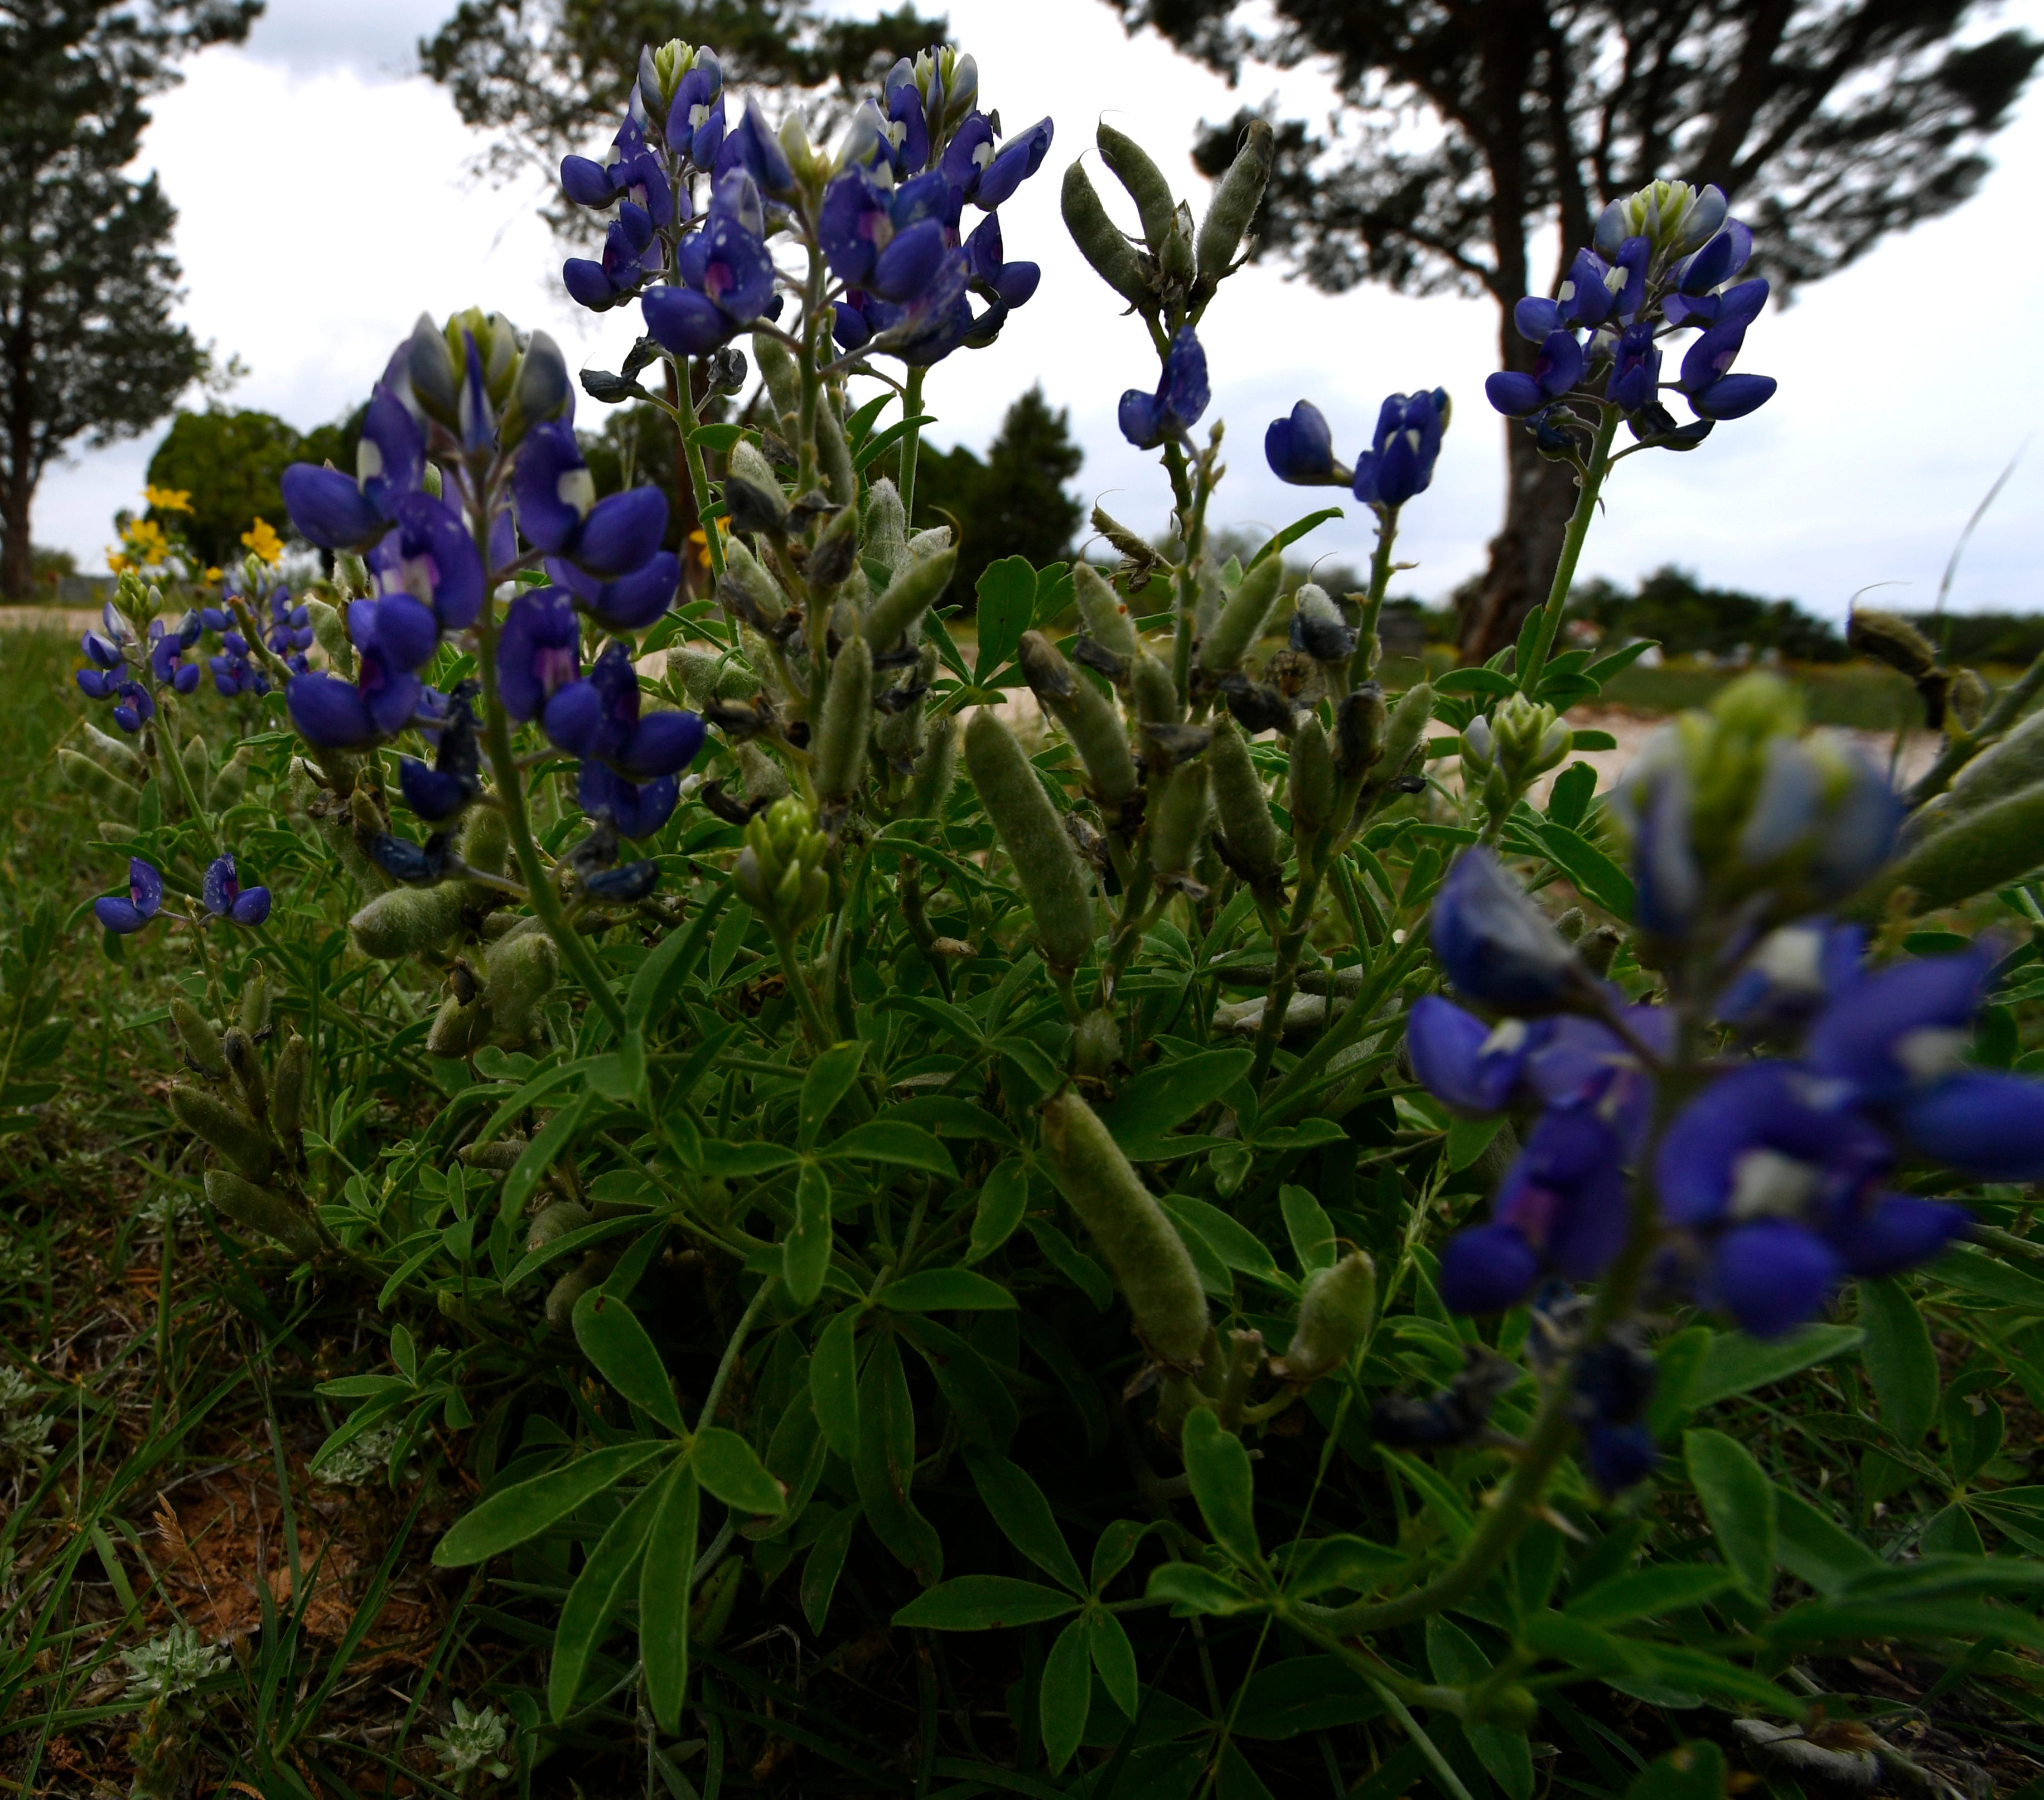 Bluebonnets bloom in the Buffalo Gap Cemetery. With most of their flowers having already come and gone, the plants will spend the next month or more developing their seed pods.